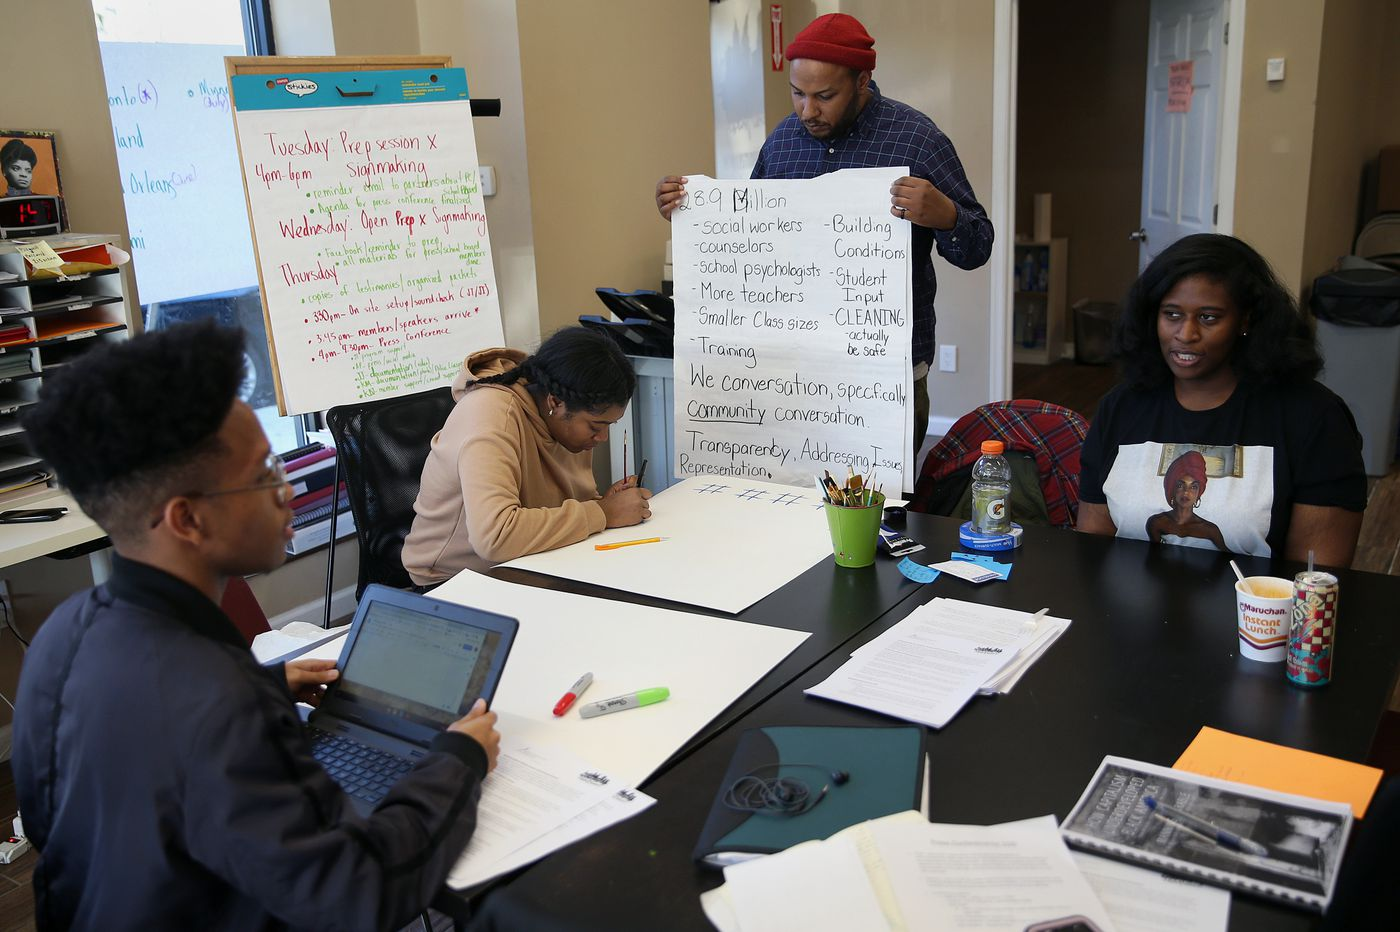 Understanding Shut Down Learners >> Activists Shut Down Meeting After School Board Votes To Mandate